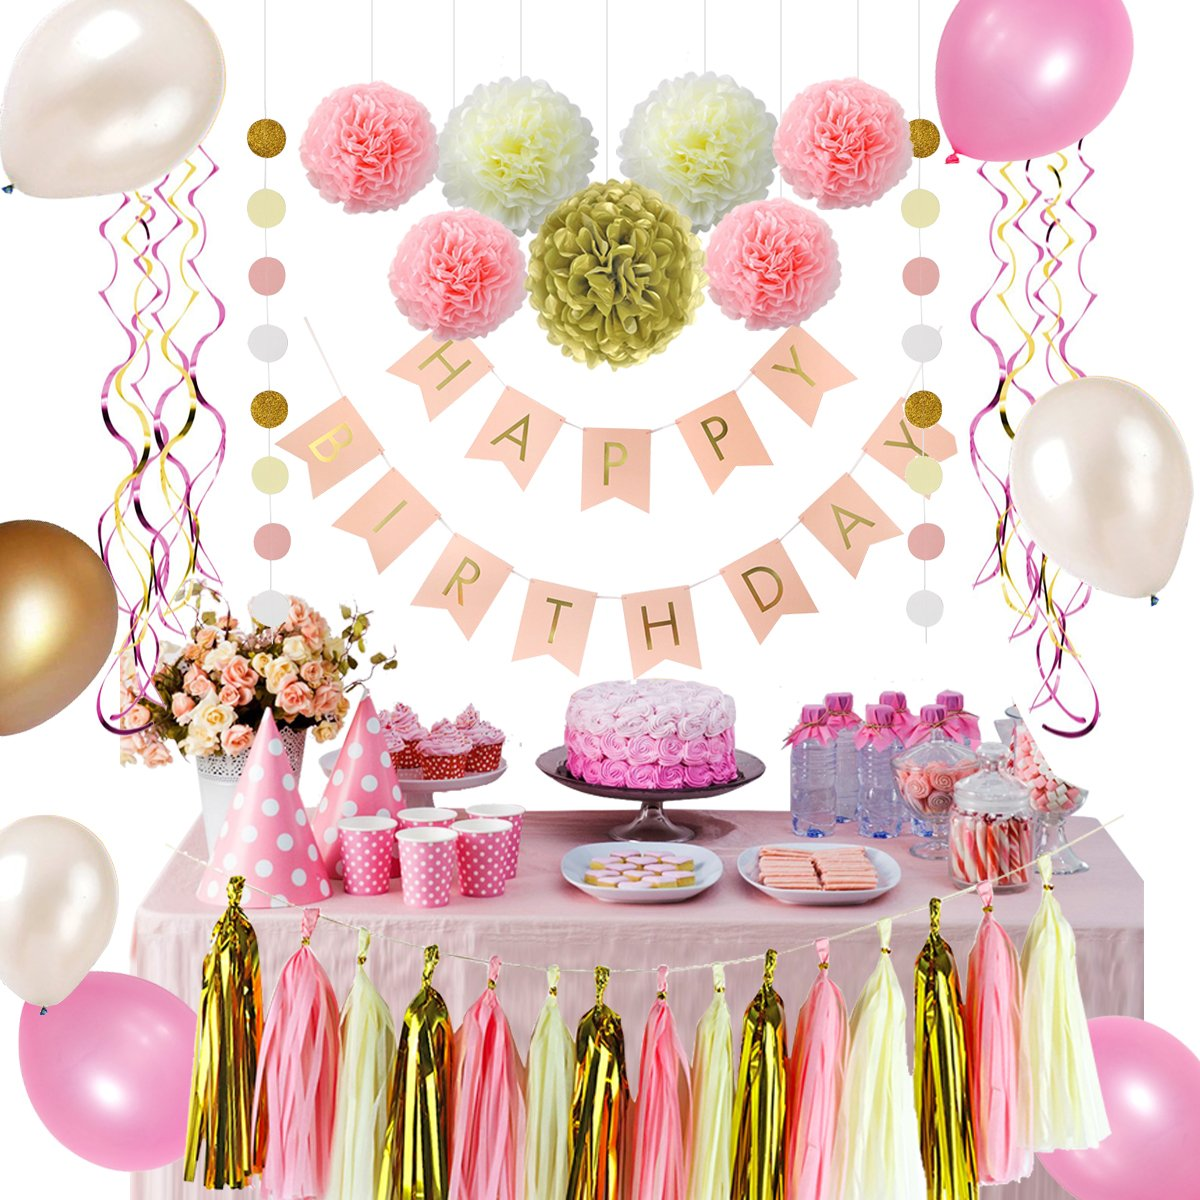 LITAUS Pink and Gold Birthday Party Decorations, balloons, Pom Poms Flowers, birthday banner, paper Garland, Tassels, Hanging Swirl for 1st Birthday Girl Decorations